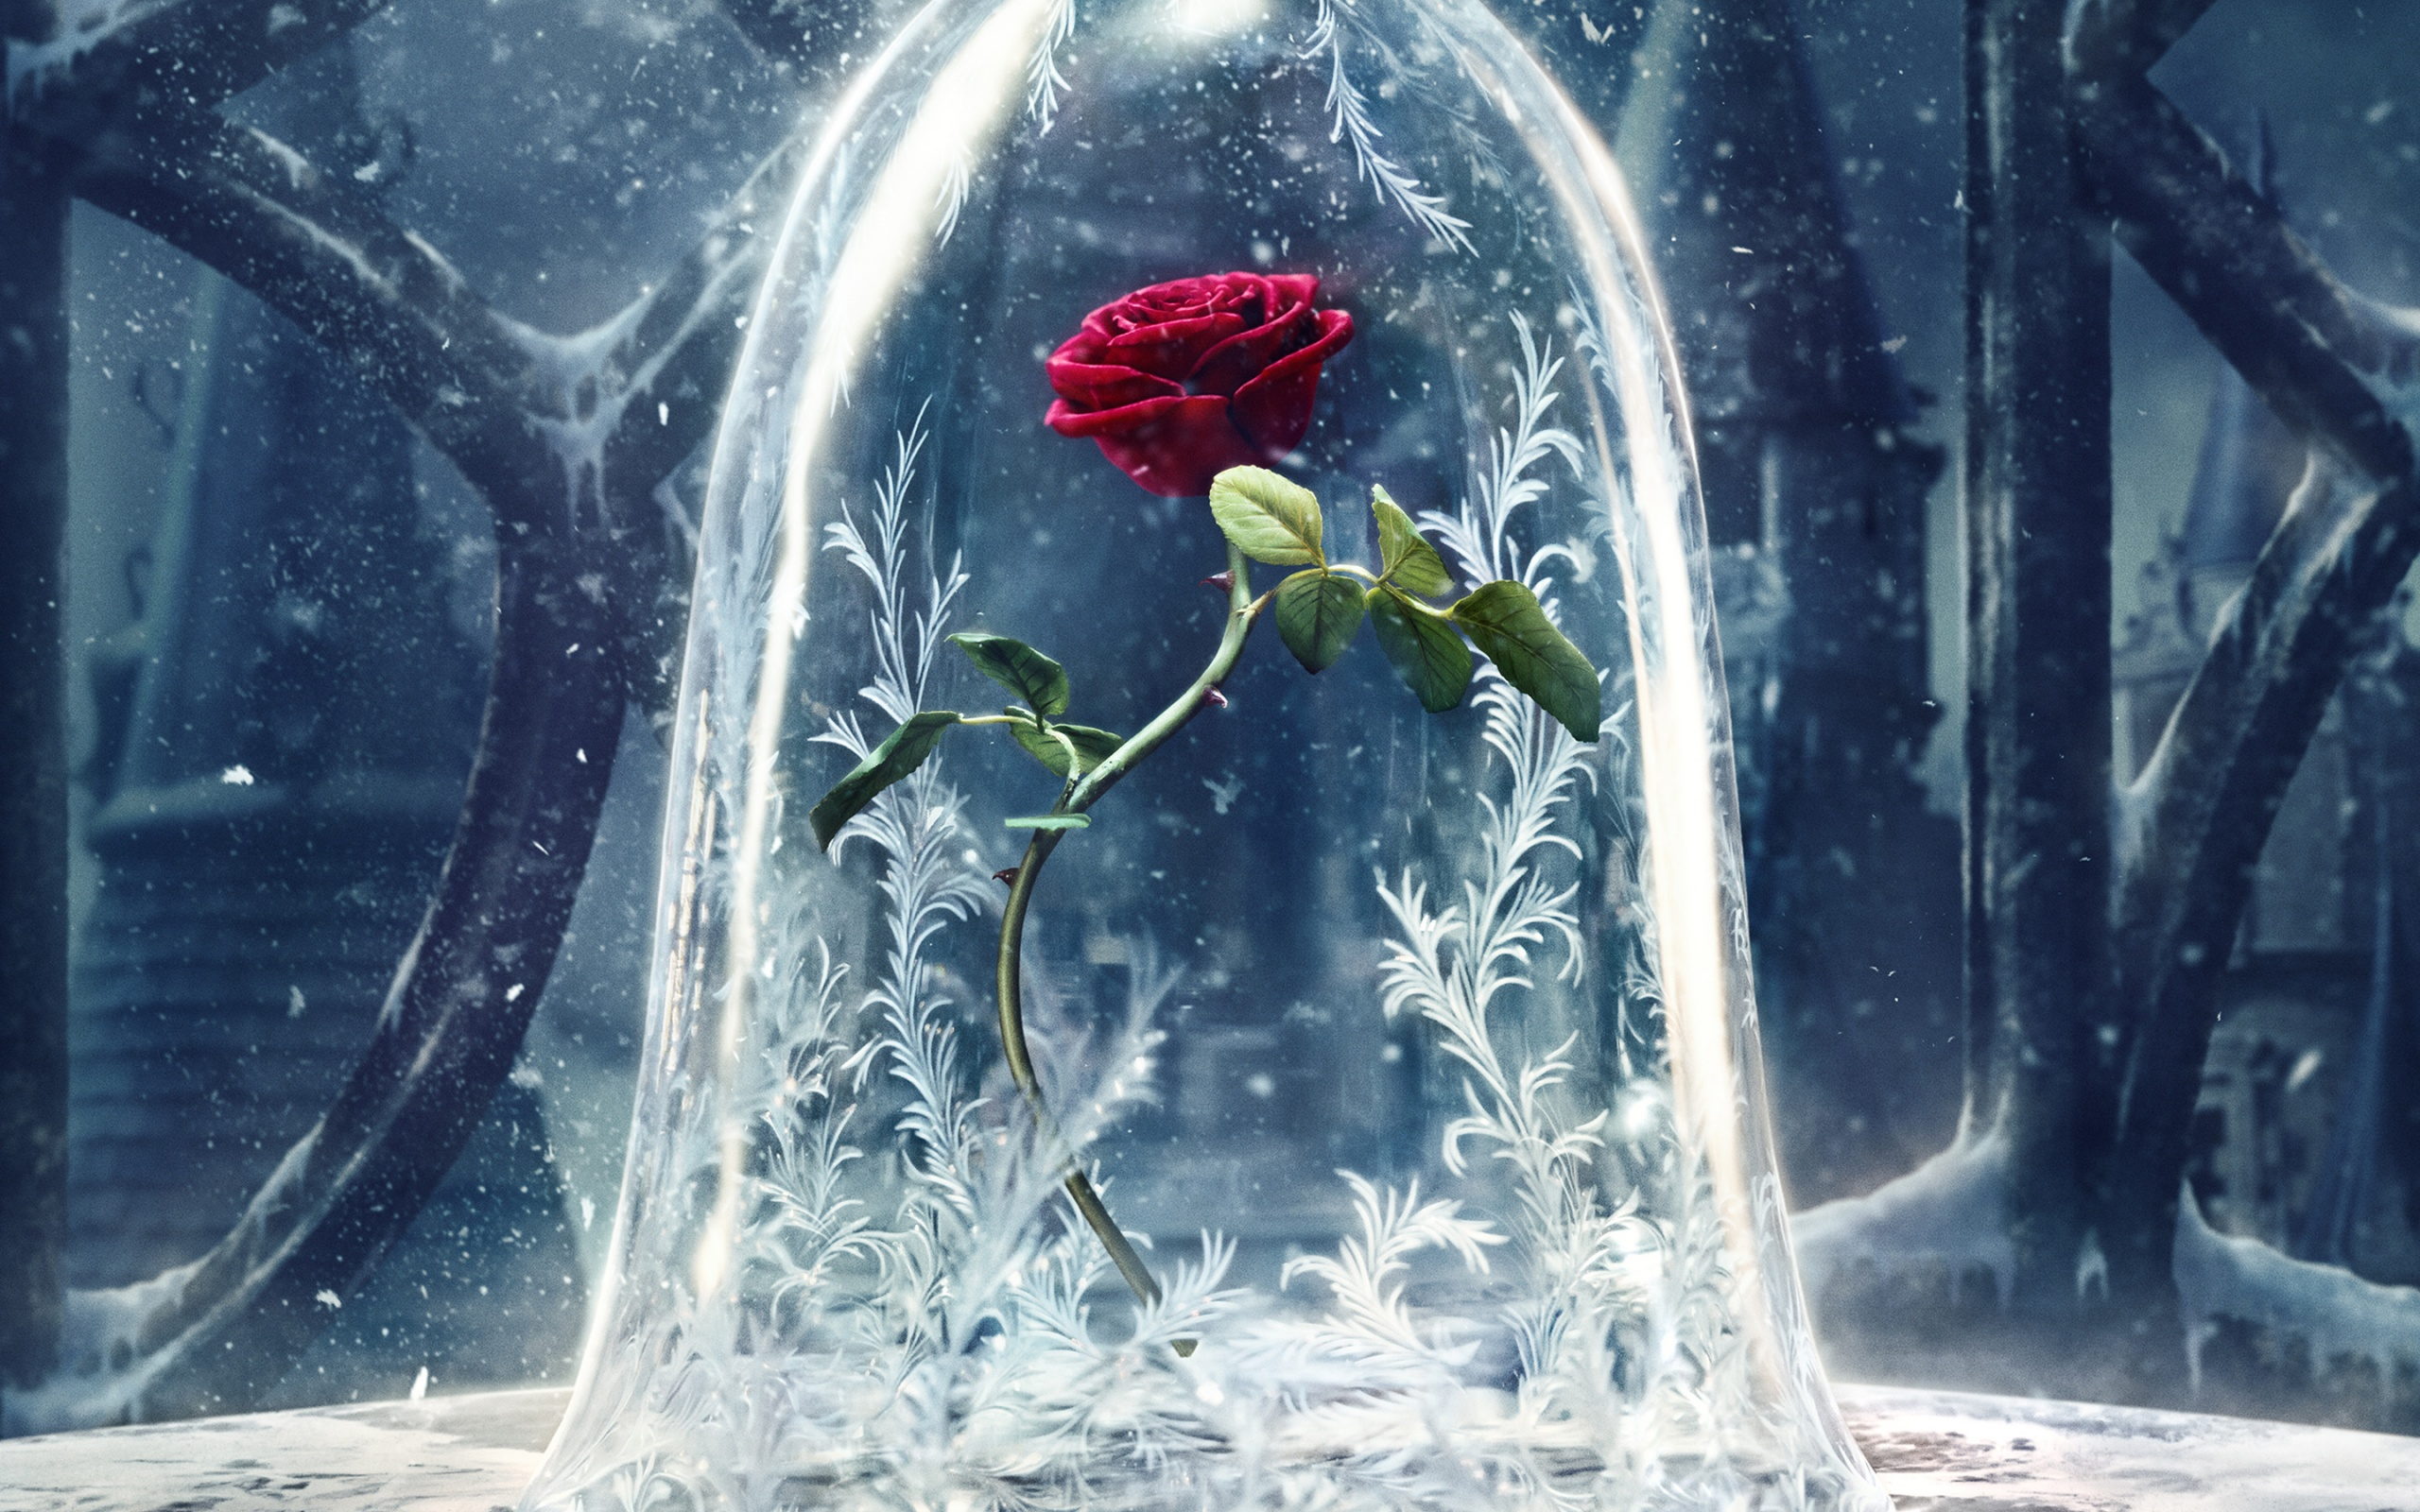 Download Beauty And Beast: Beauty And The Beast 2017 Wallpapers In Jpg Format For